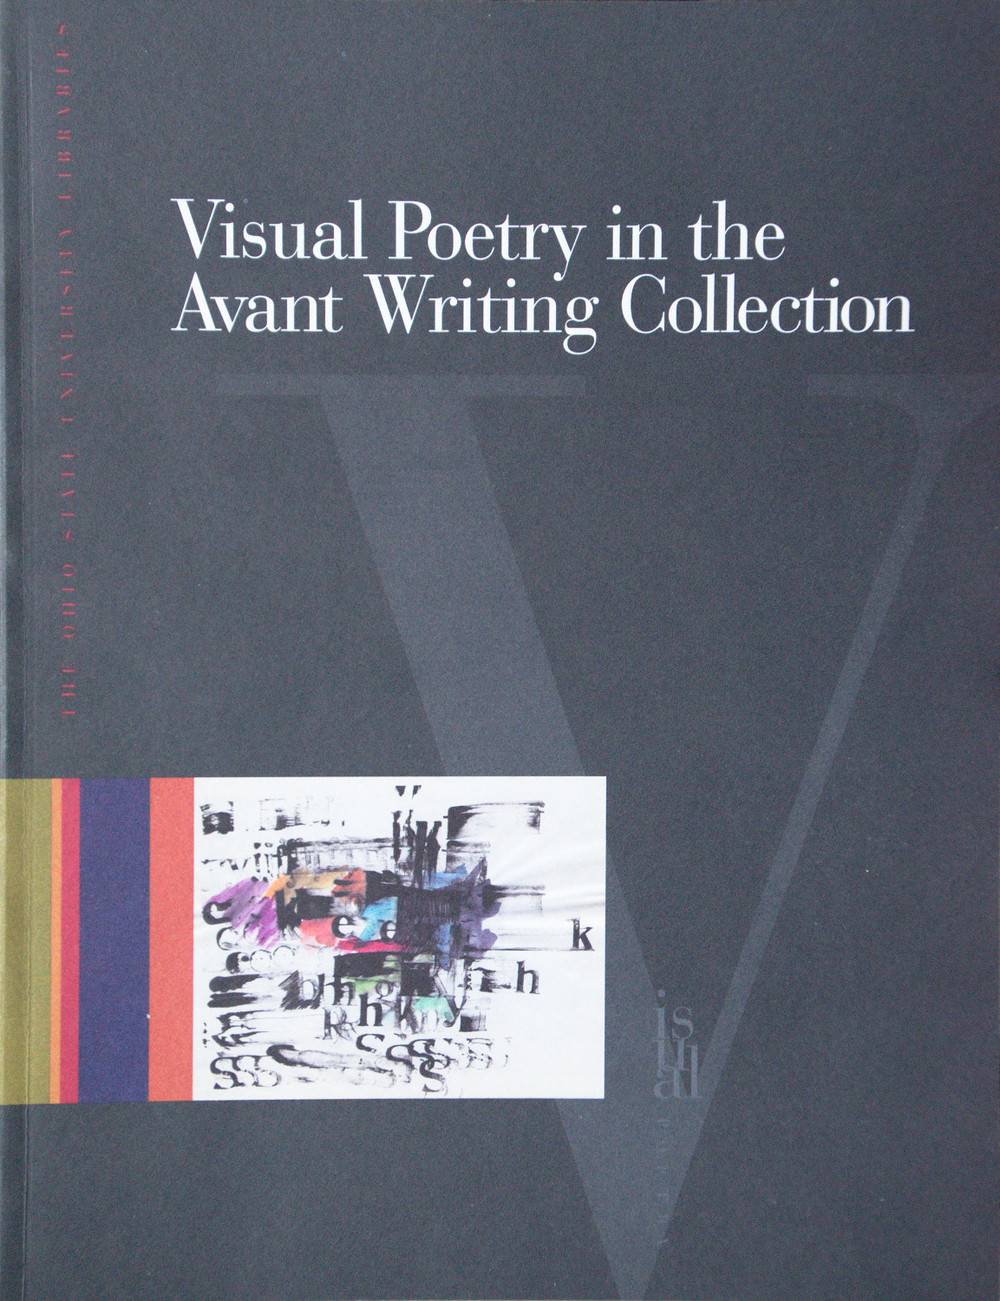 Visual Poetry in the Avant Writing Collection, ed. John M. Bennett